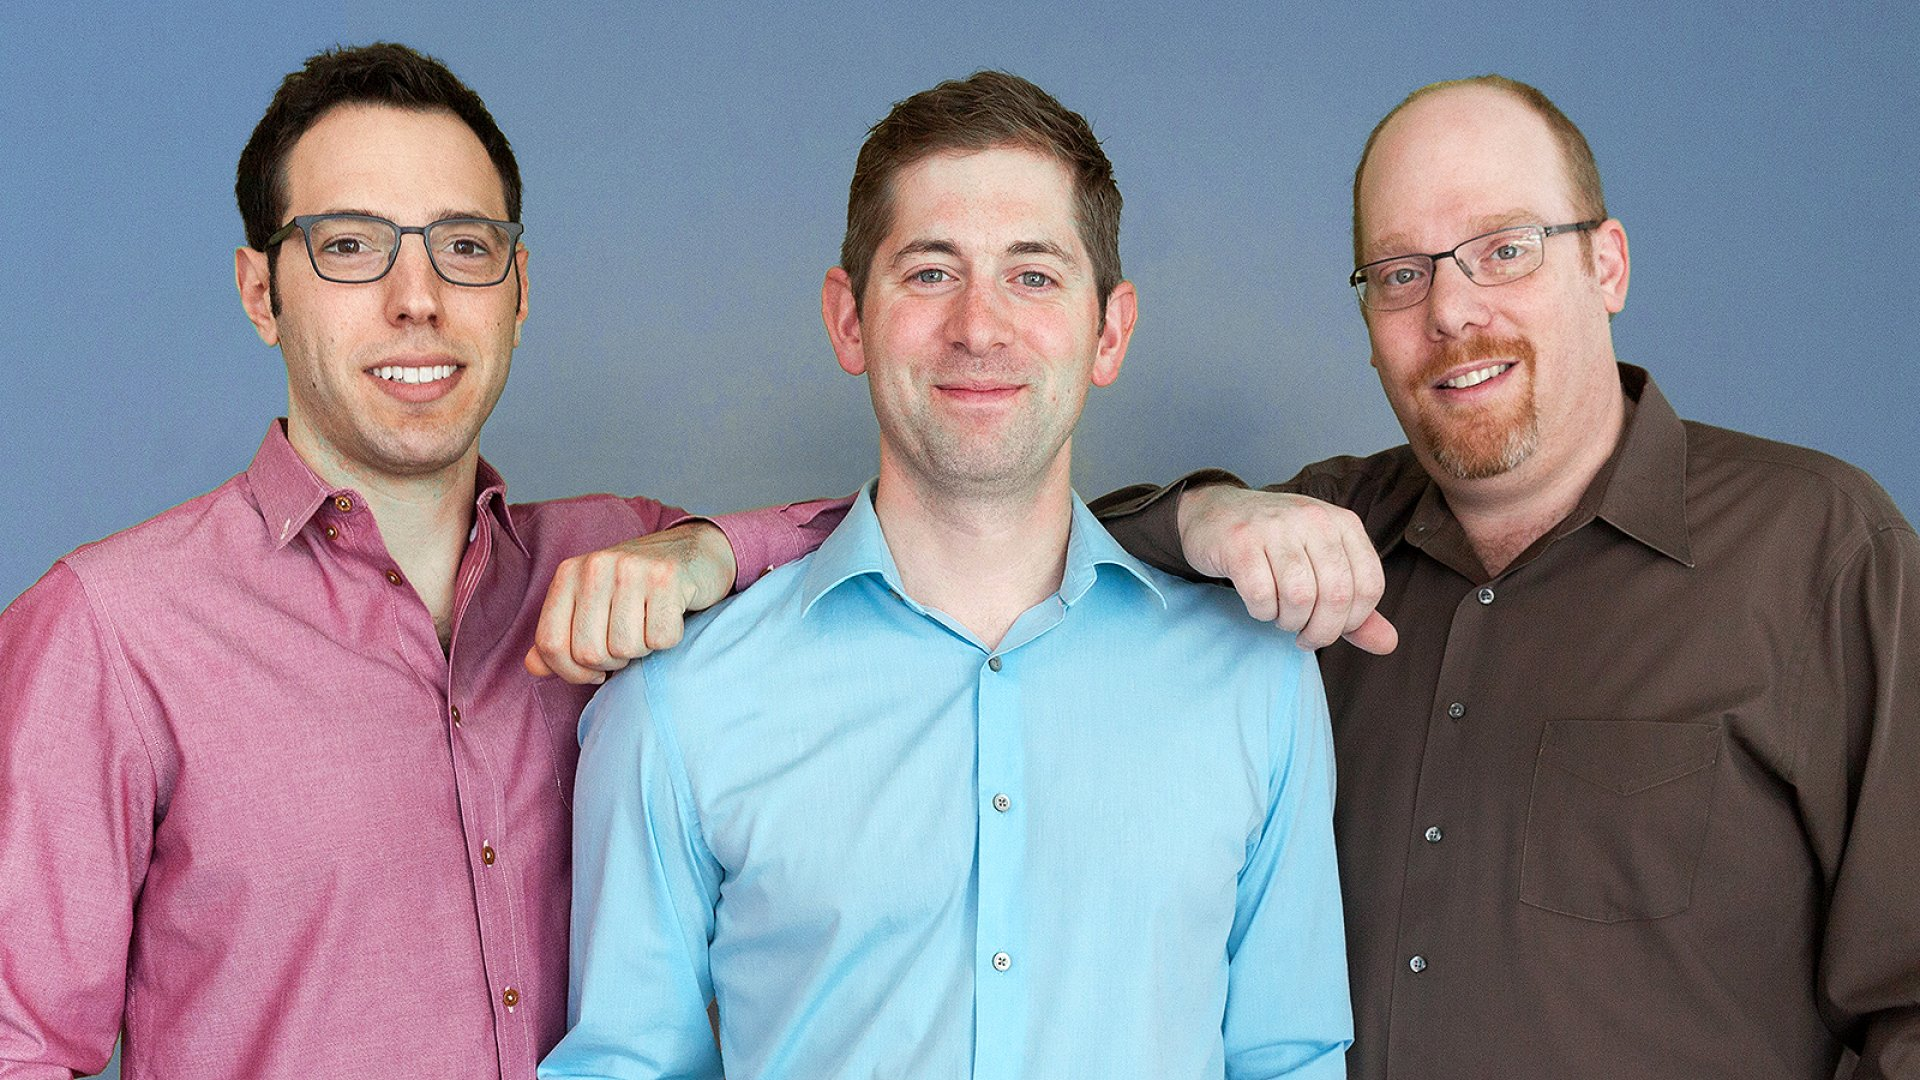 From left to right, co-founders David Breslauer, Dan Widmaier, and Ethan Mirsky.